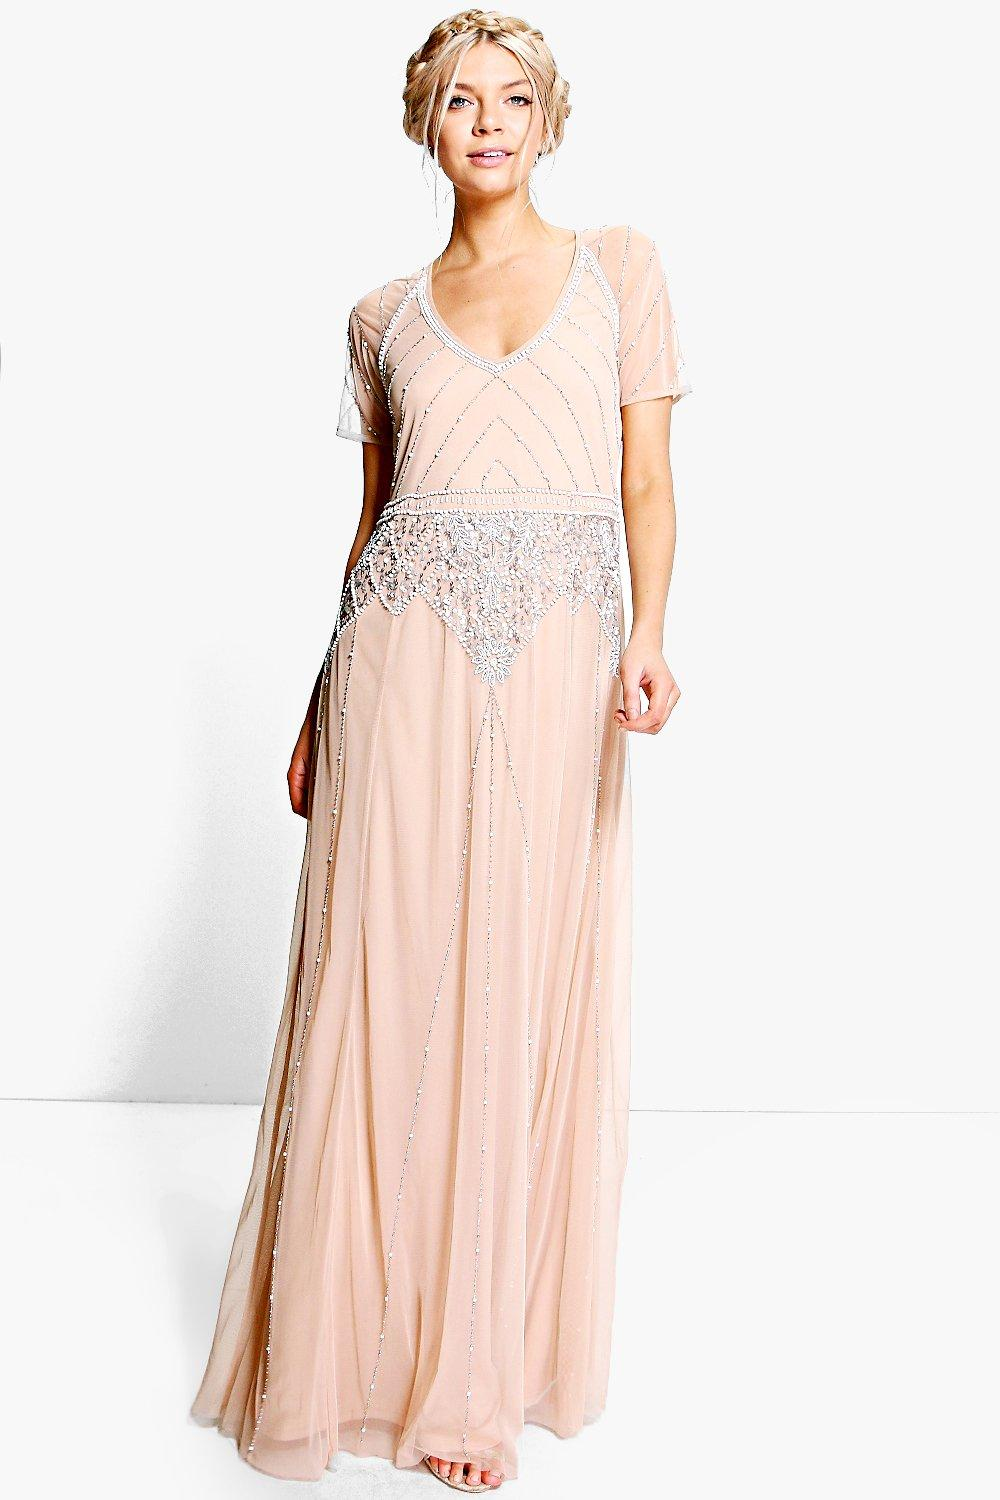 Vintage Inspired Bridesmaid Dresses, Mothers Dresses Boutique Mai Beaded Cap Sleeve Maxi Dress nude $88.00 AT vintagedancer.com